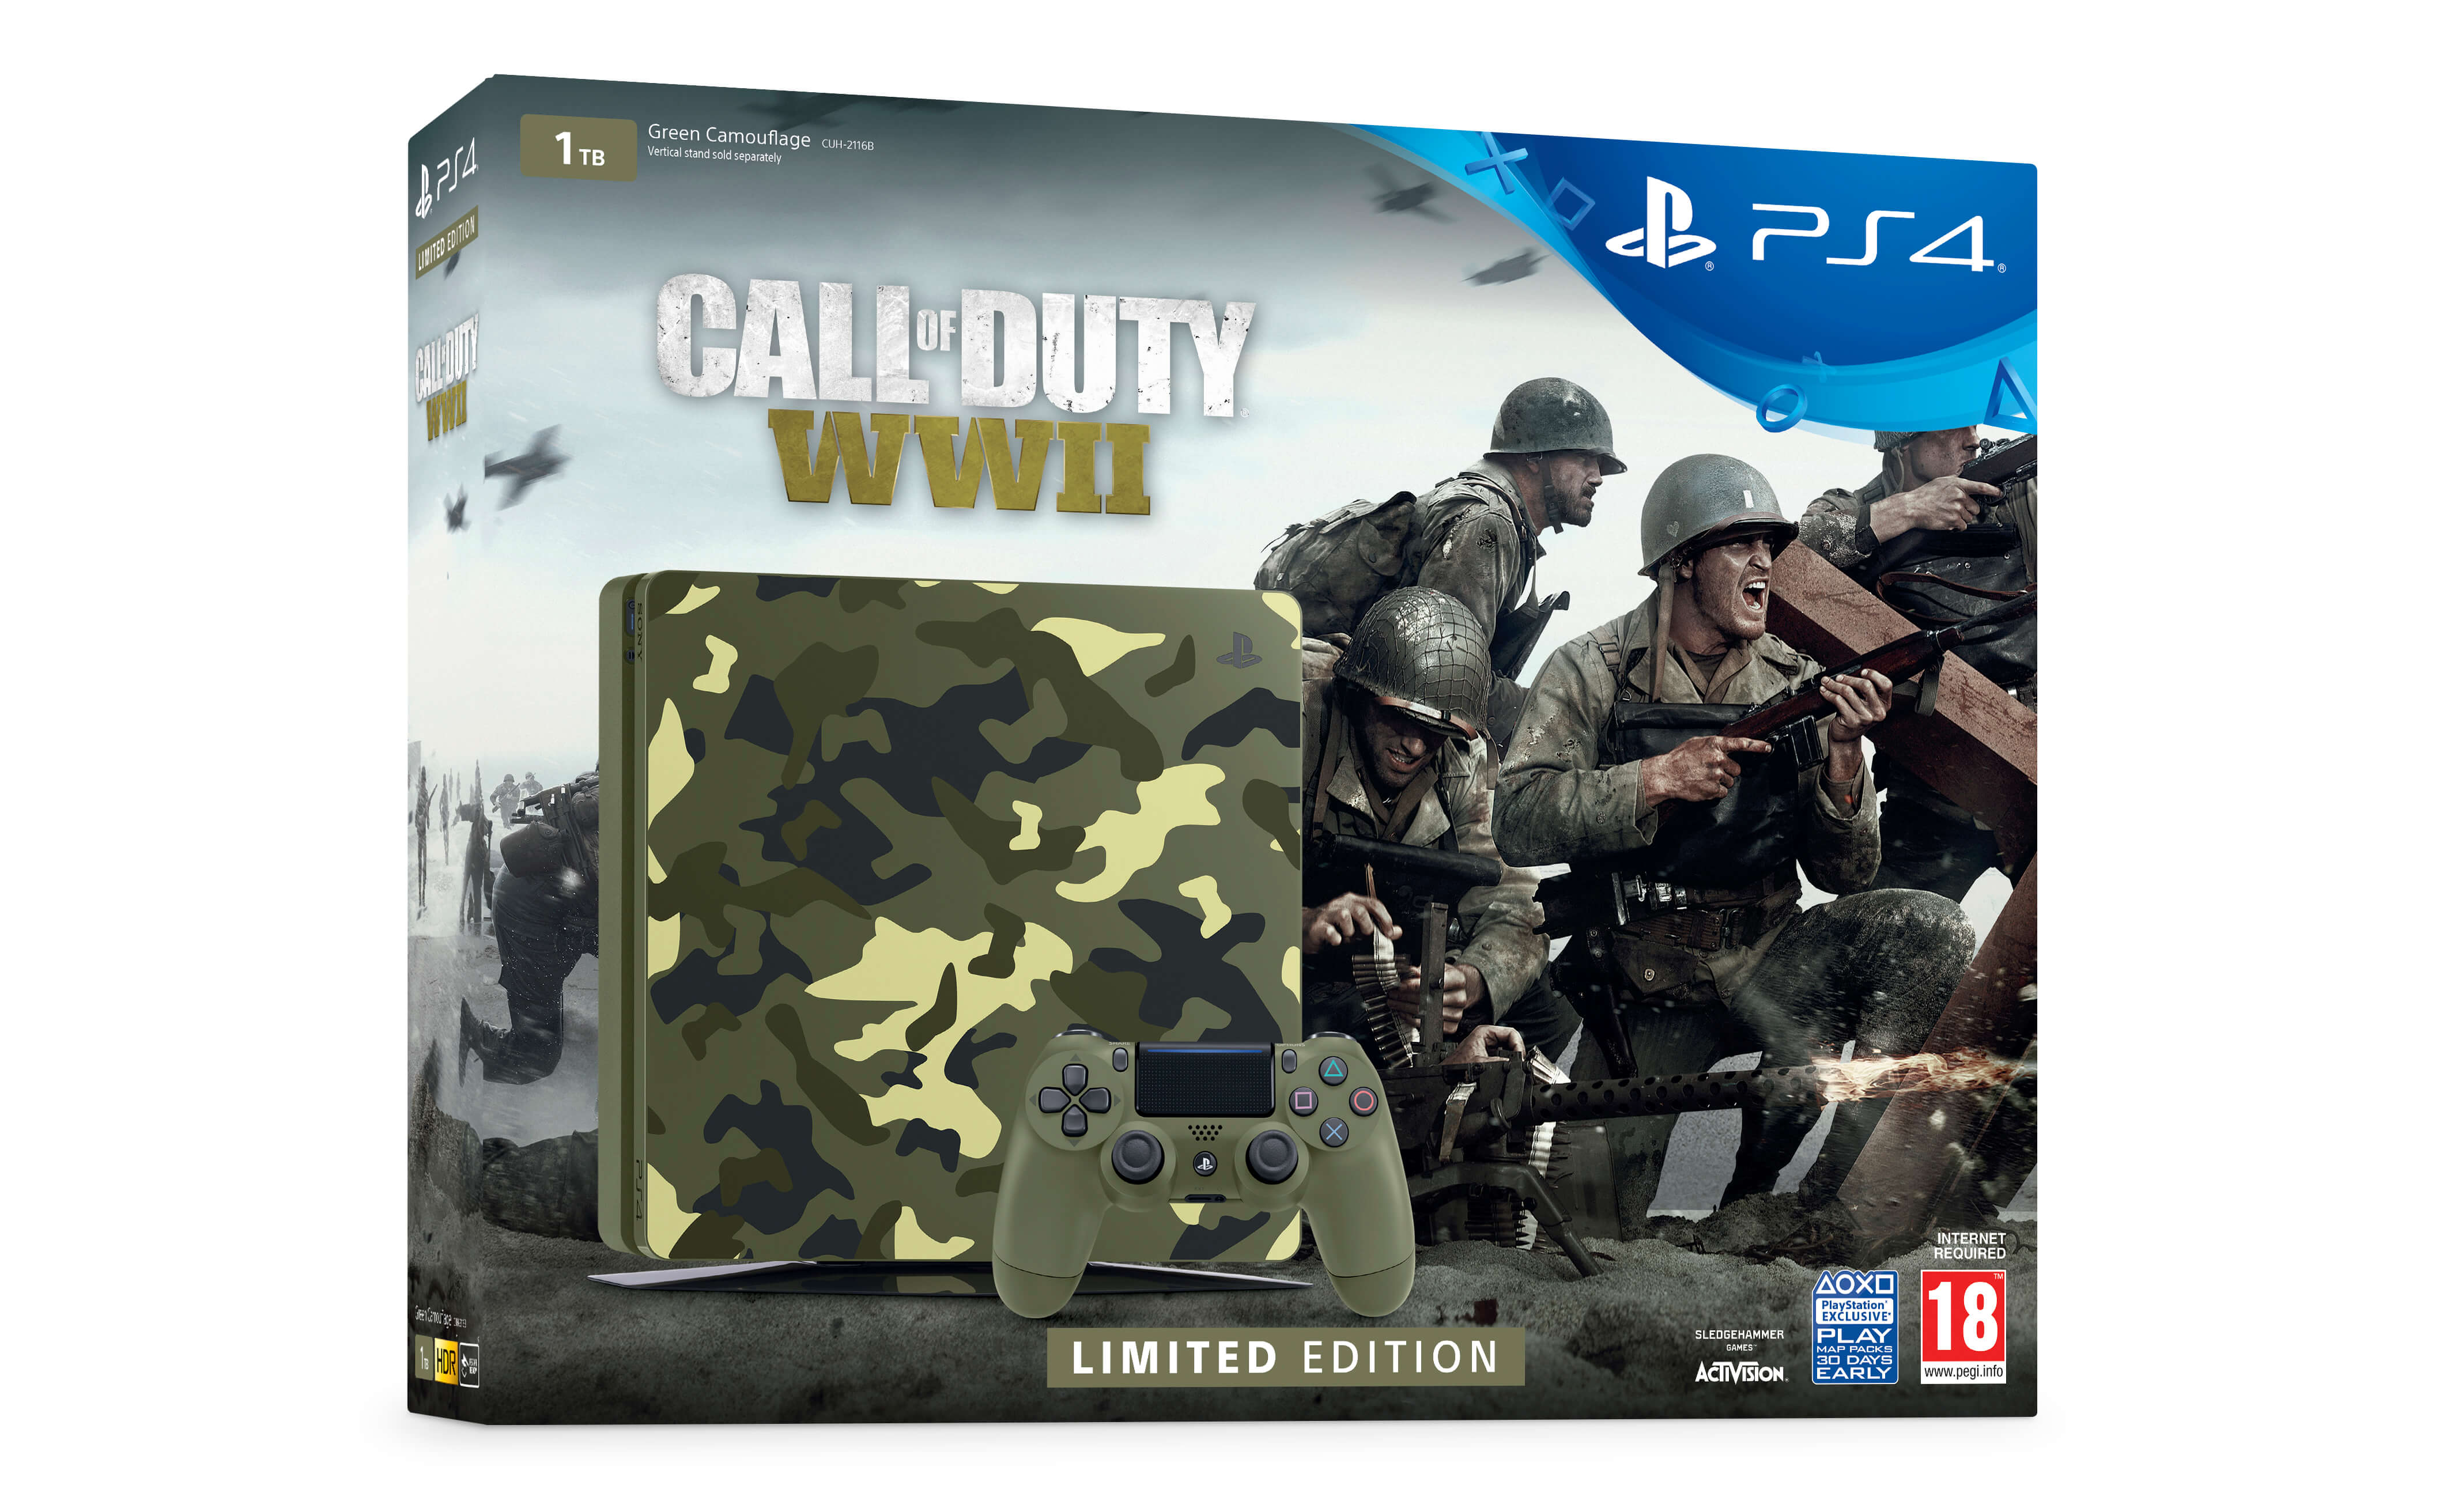 PS4 Call of Duty WWII bundle box